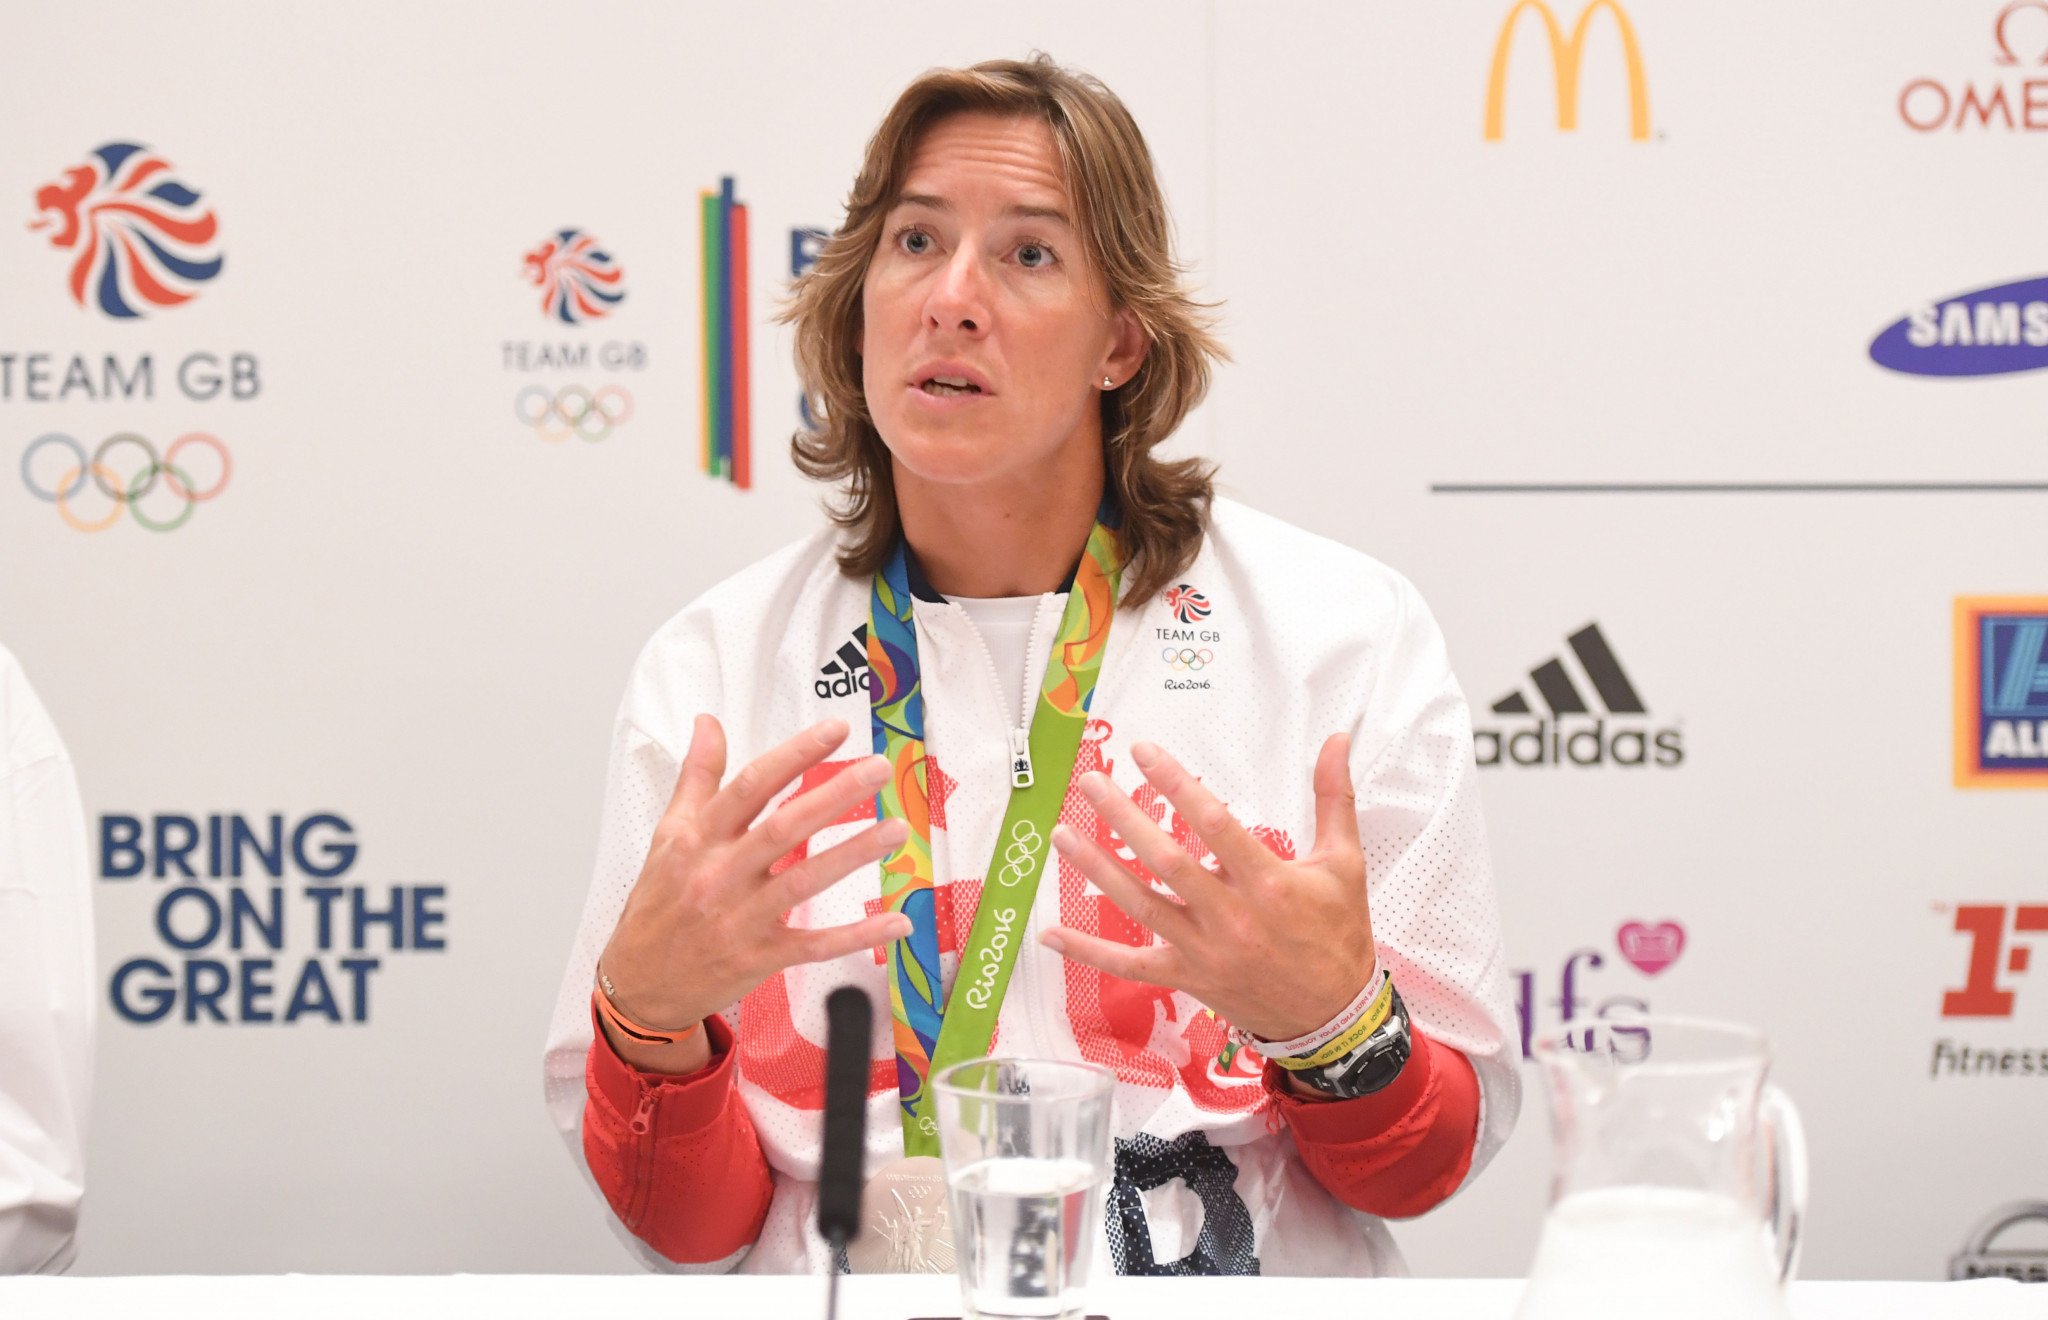 Great Britain's six-time world champion Katherine Grainger won the Thomas Keller medal last year ©Getty Images